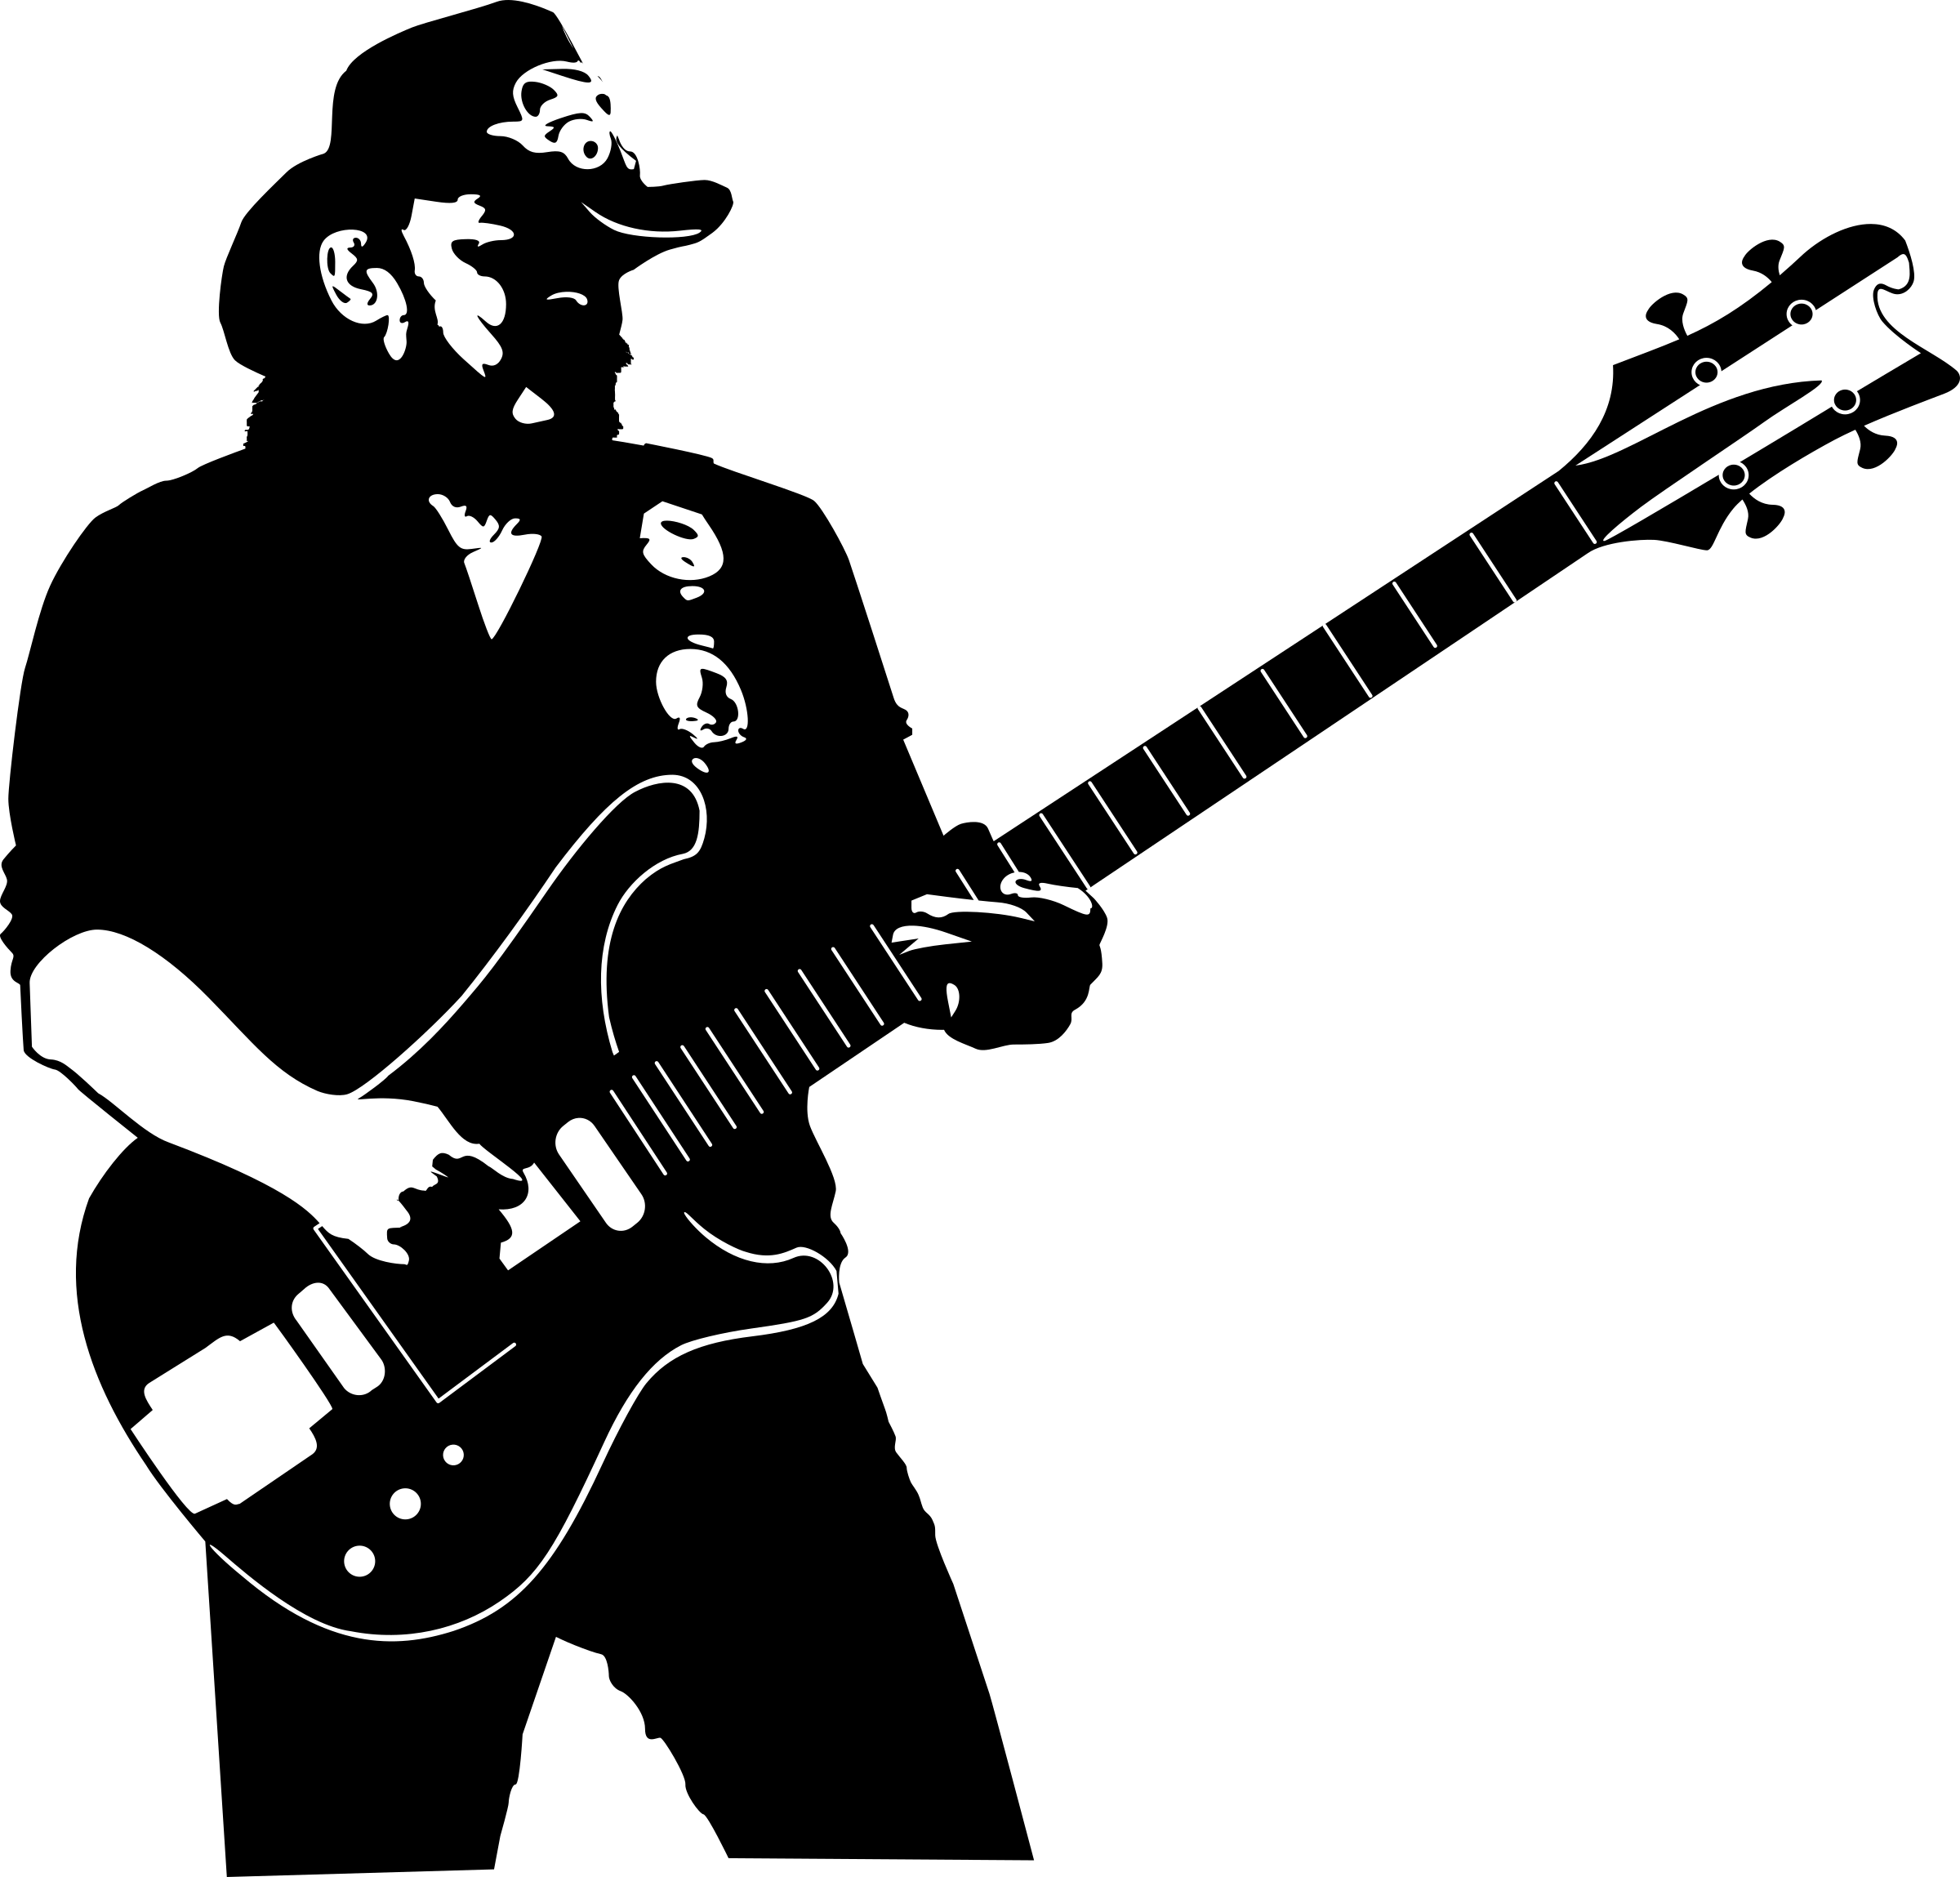 Lemmy by Chrisdesign